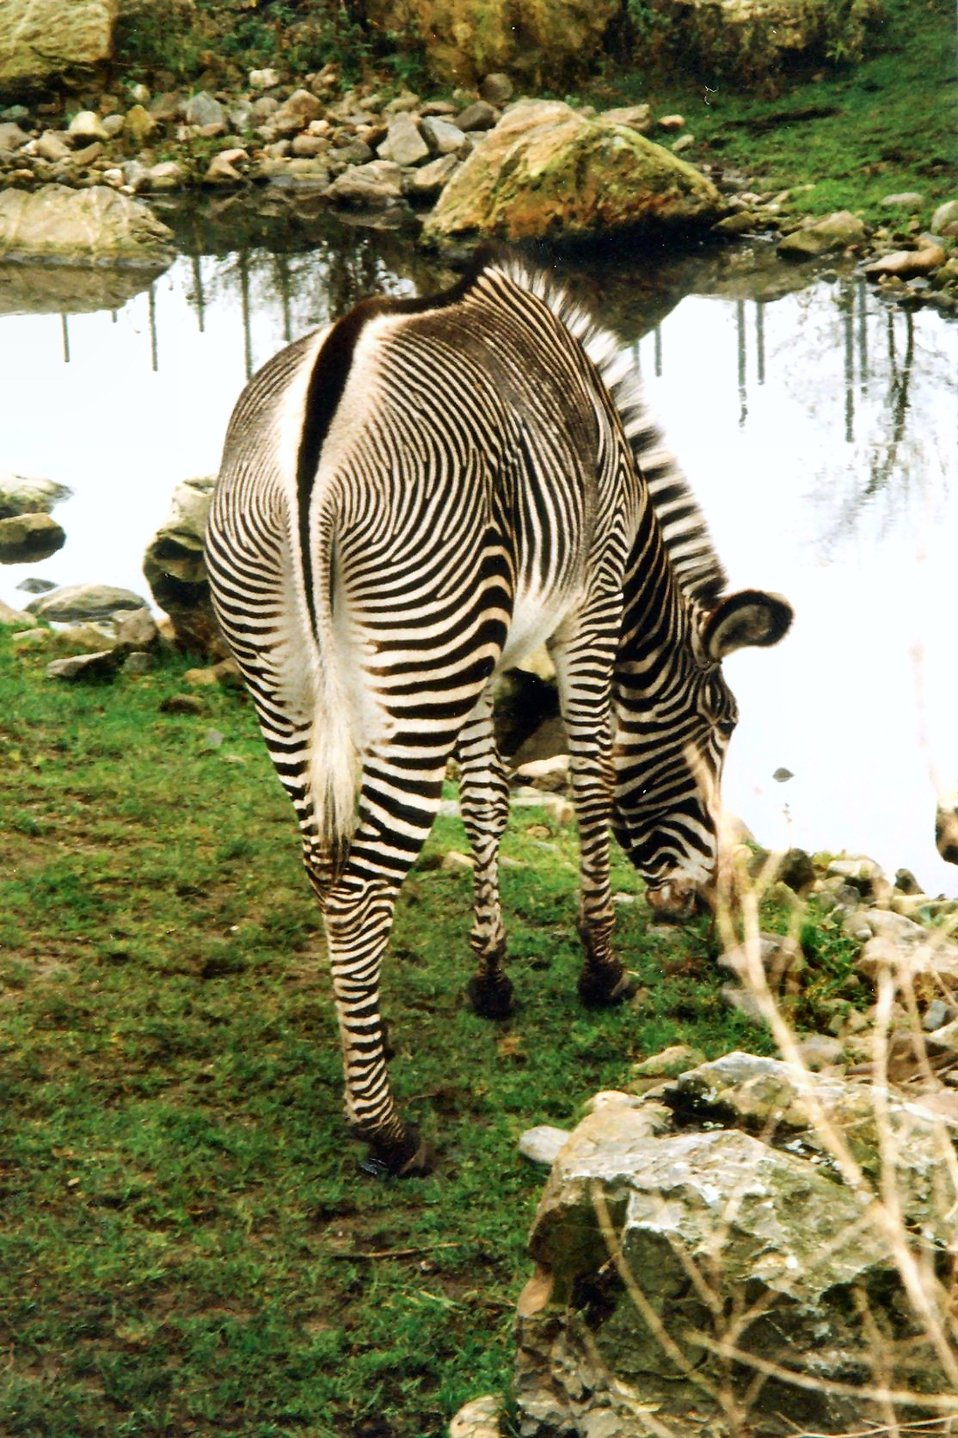 Zebra at a stream : Free Stock Photo